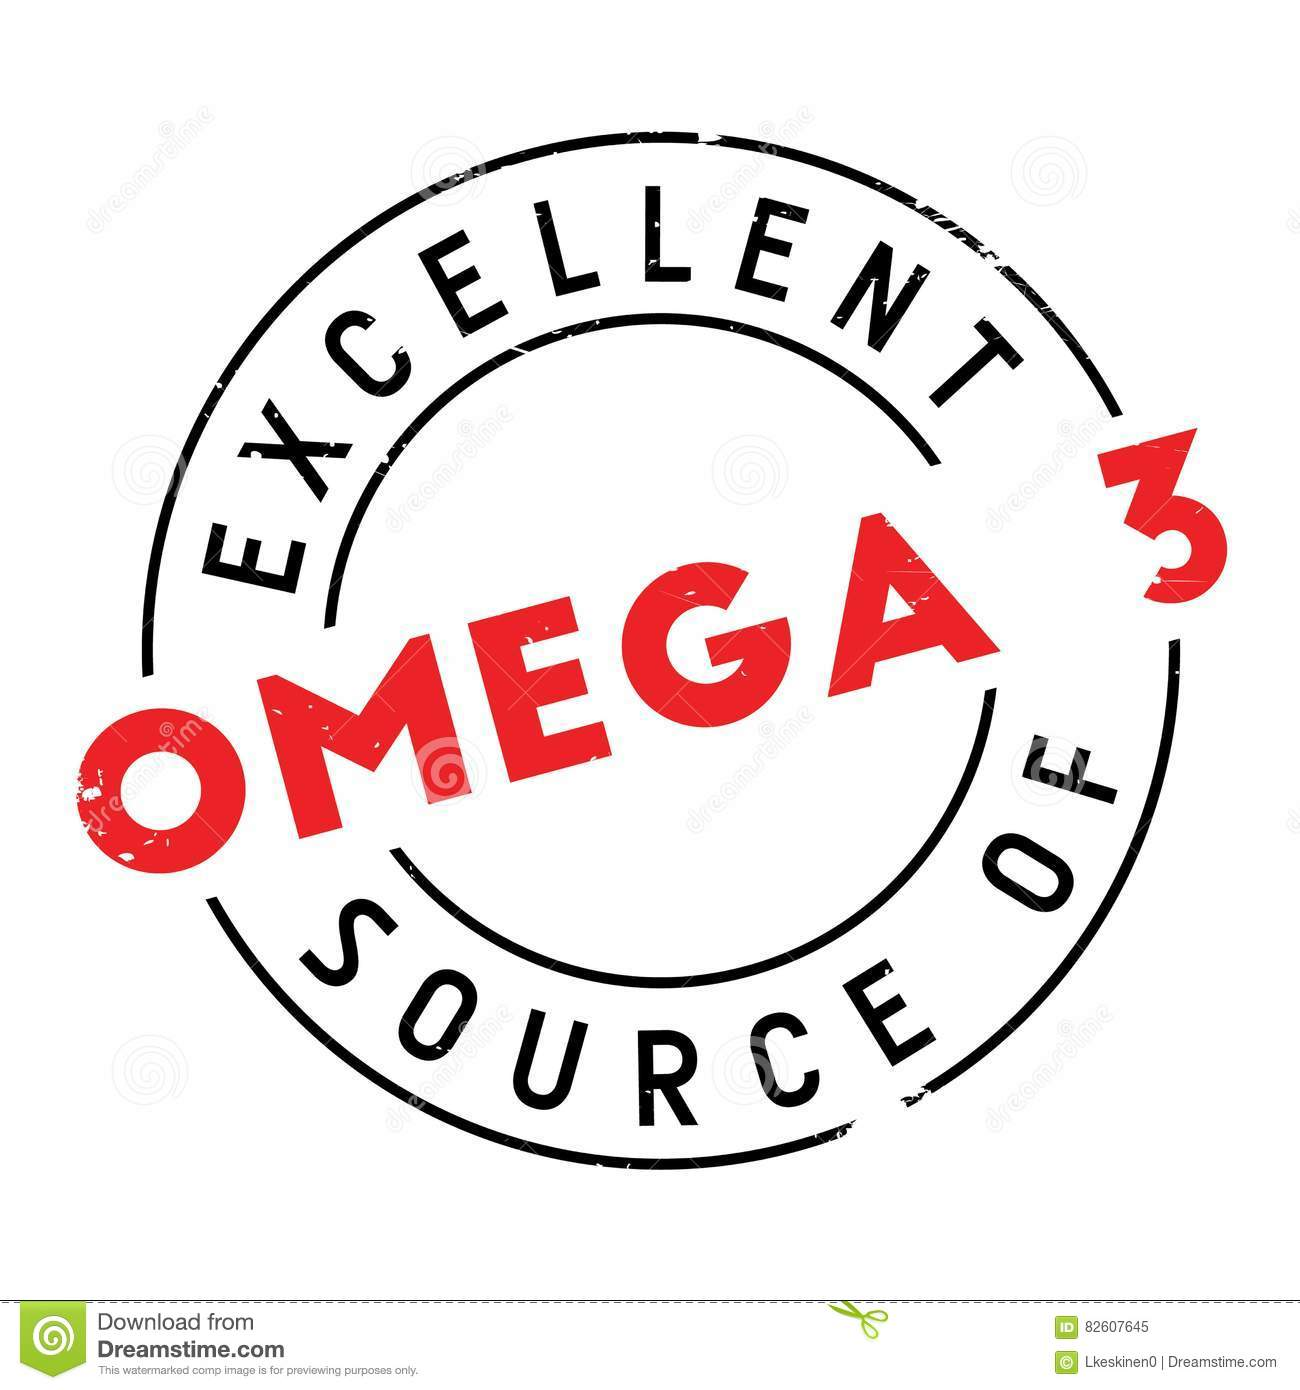 Excellent source of omega 3 stamp stock vector illustration of excellent source of omega 3 stamp diet icon biocorpaavc Choice Image